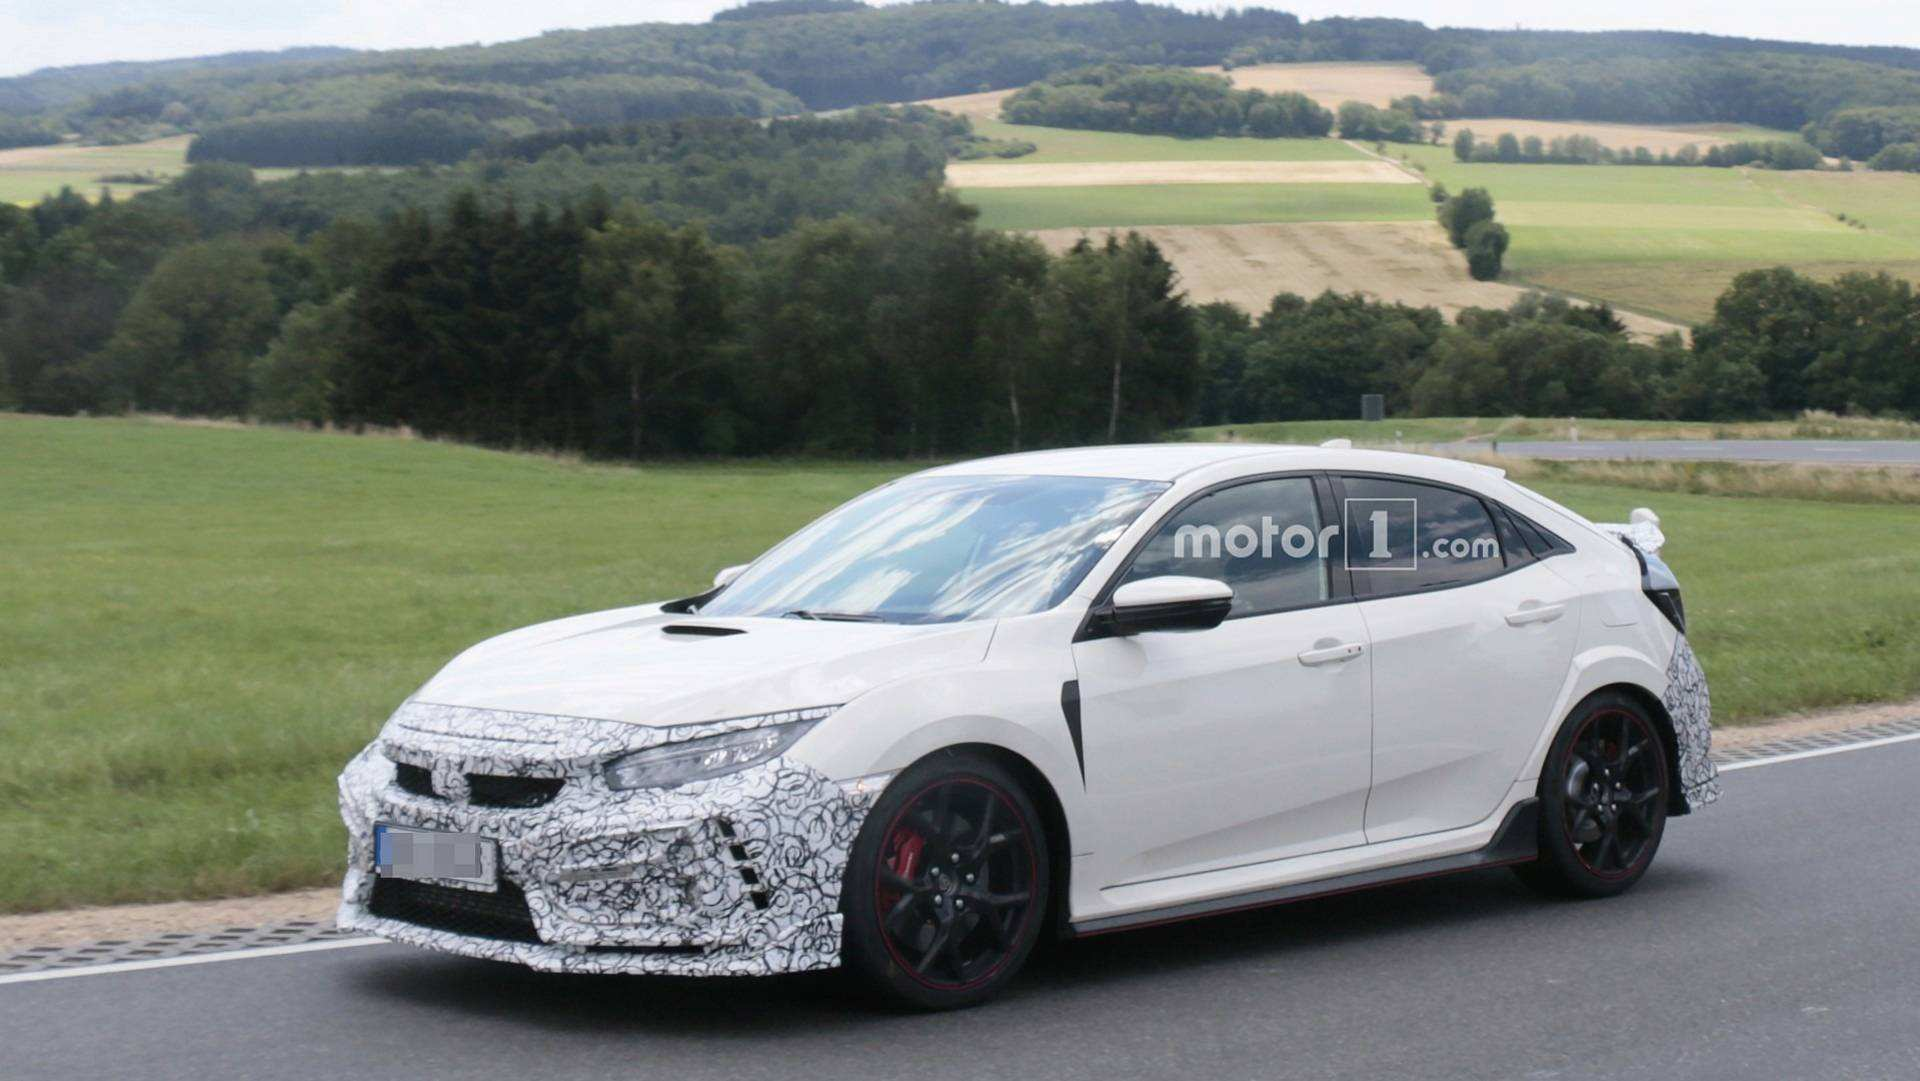 16 Gallery of Honda Civic Type R 2020 Price with Honda Civic Type R 2020